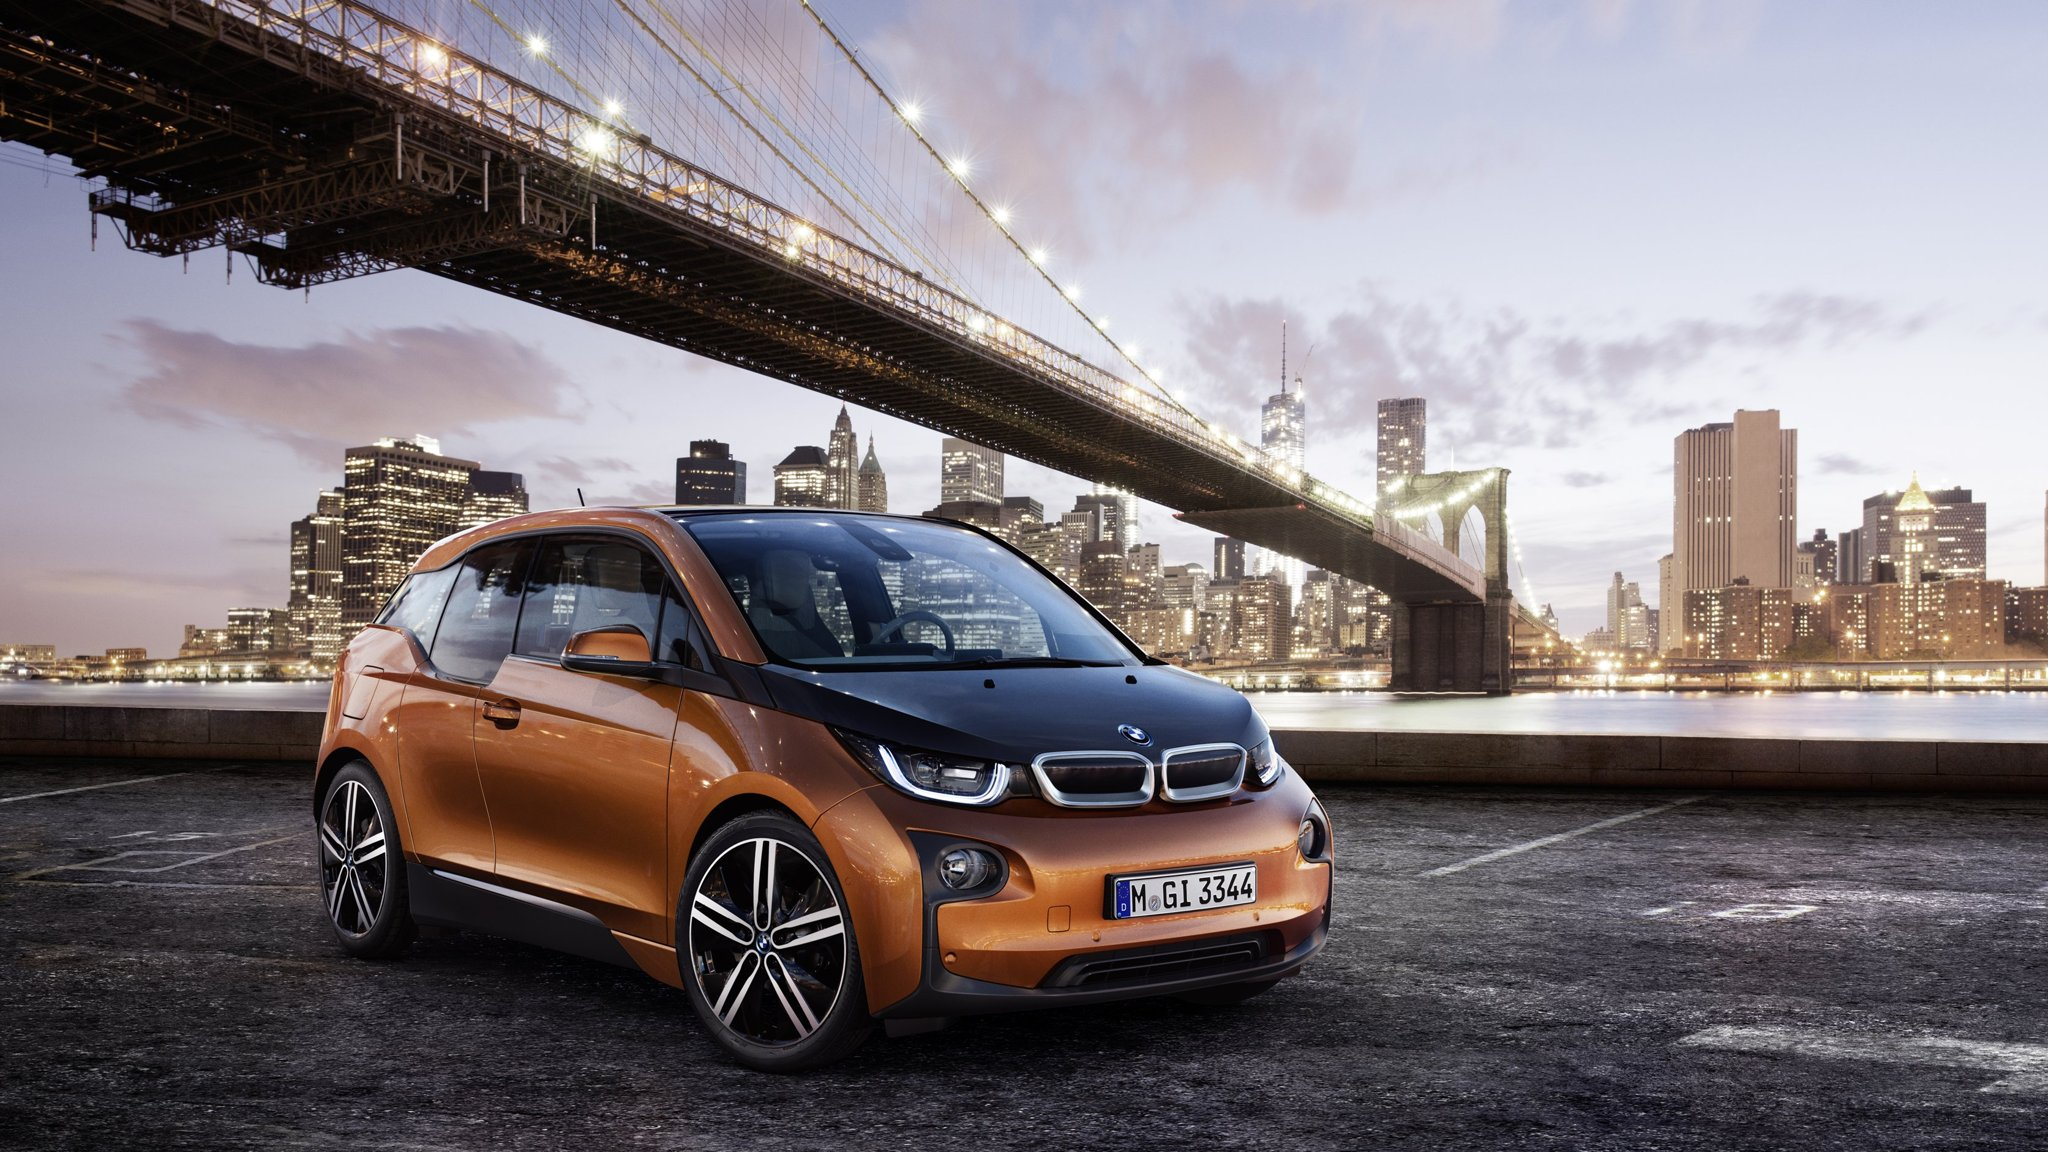 'Why my desire for an electric car went into reverse'